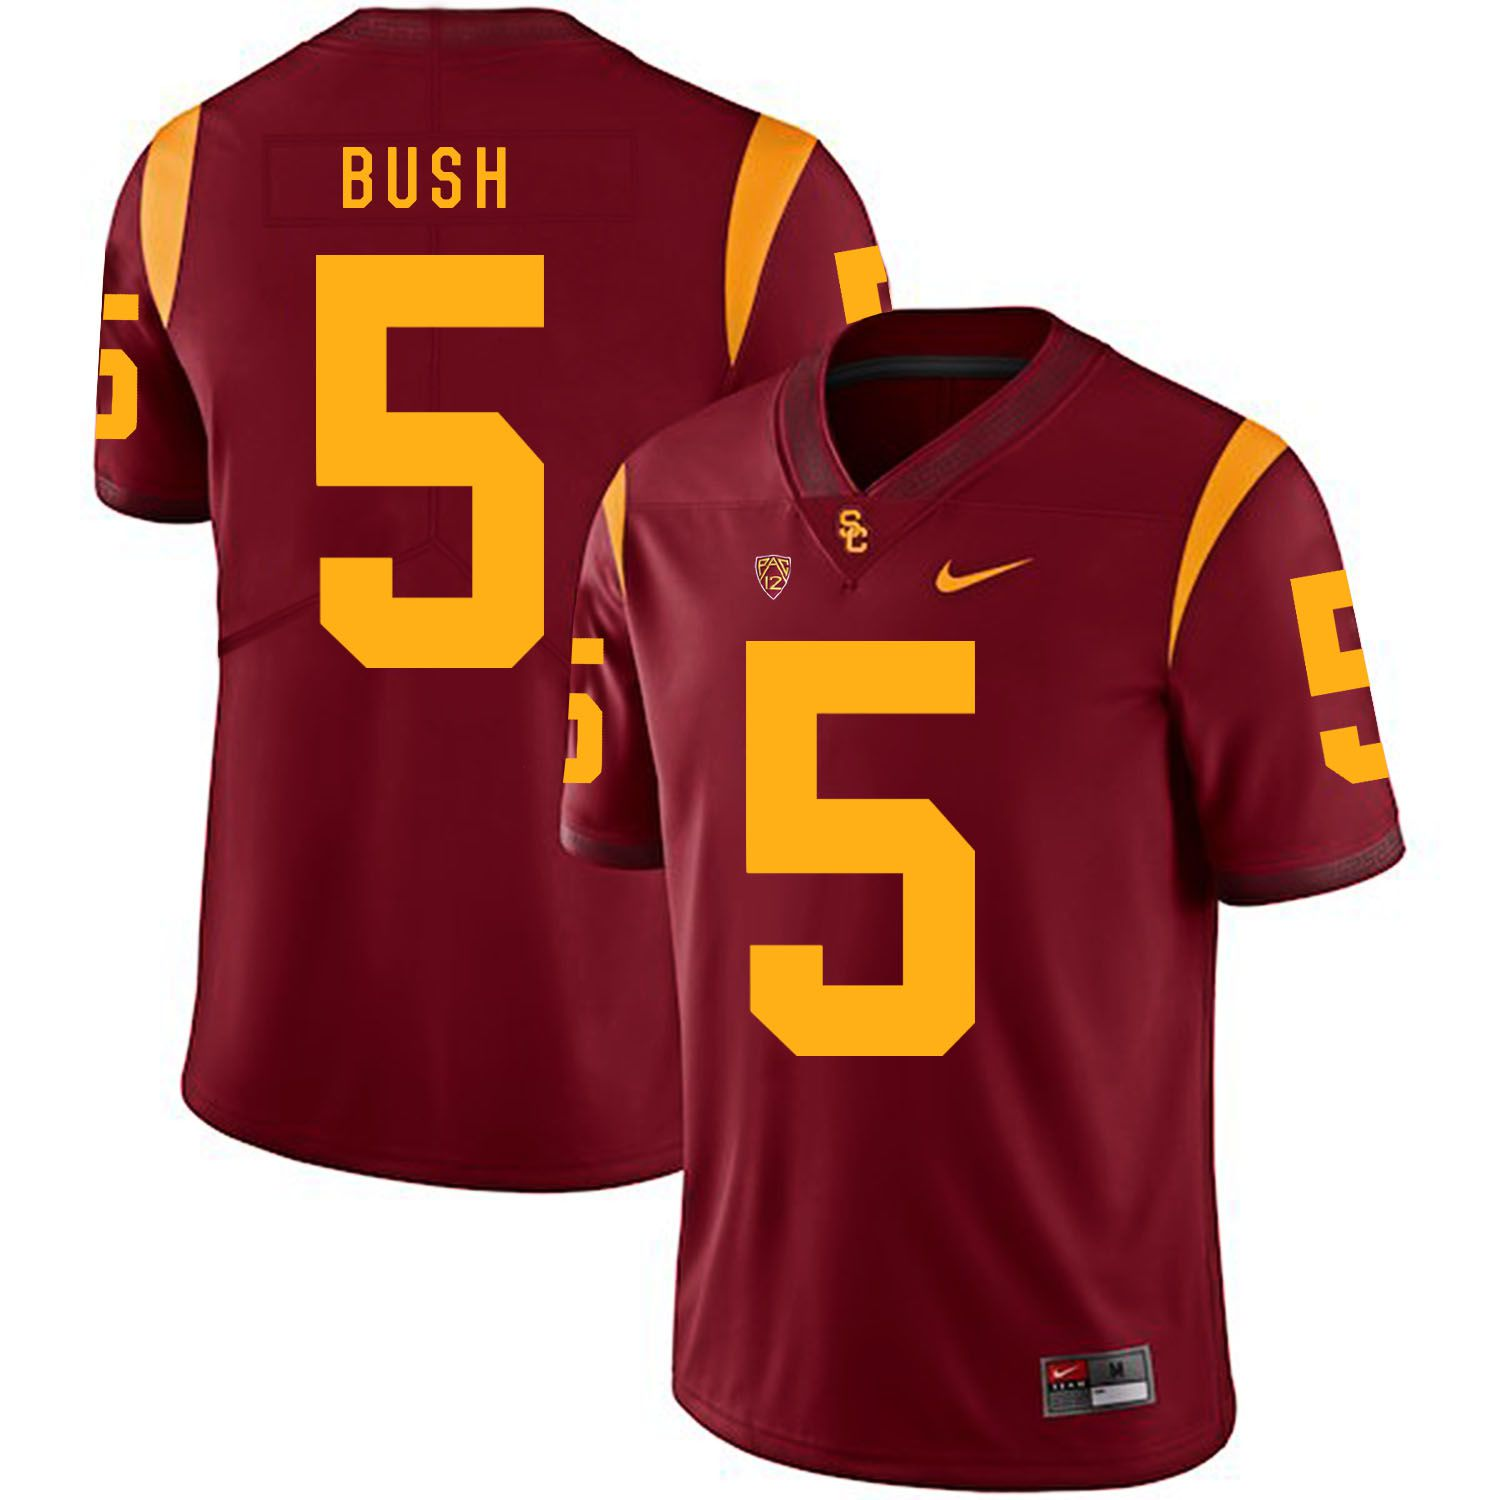 Men USC Trojans 5 Bush Red Customized NCAA Jerseys